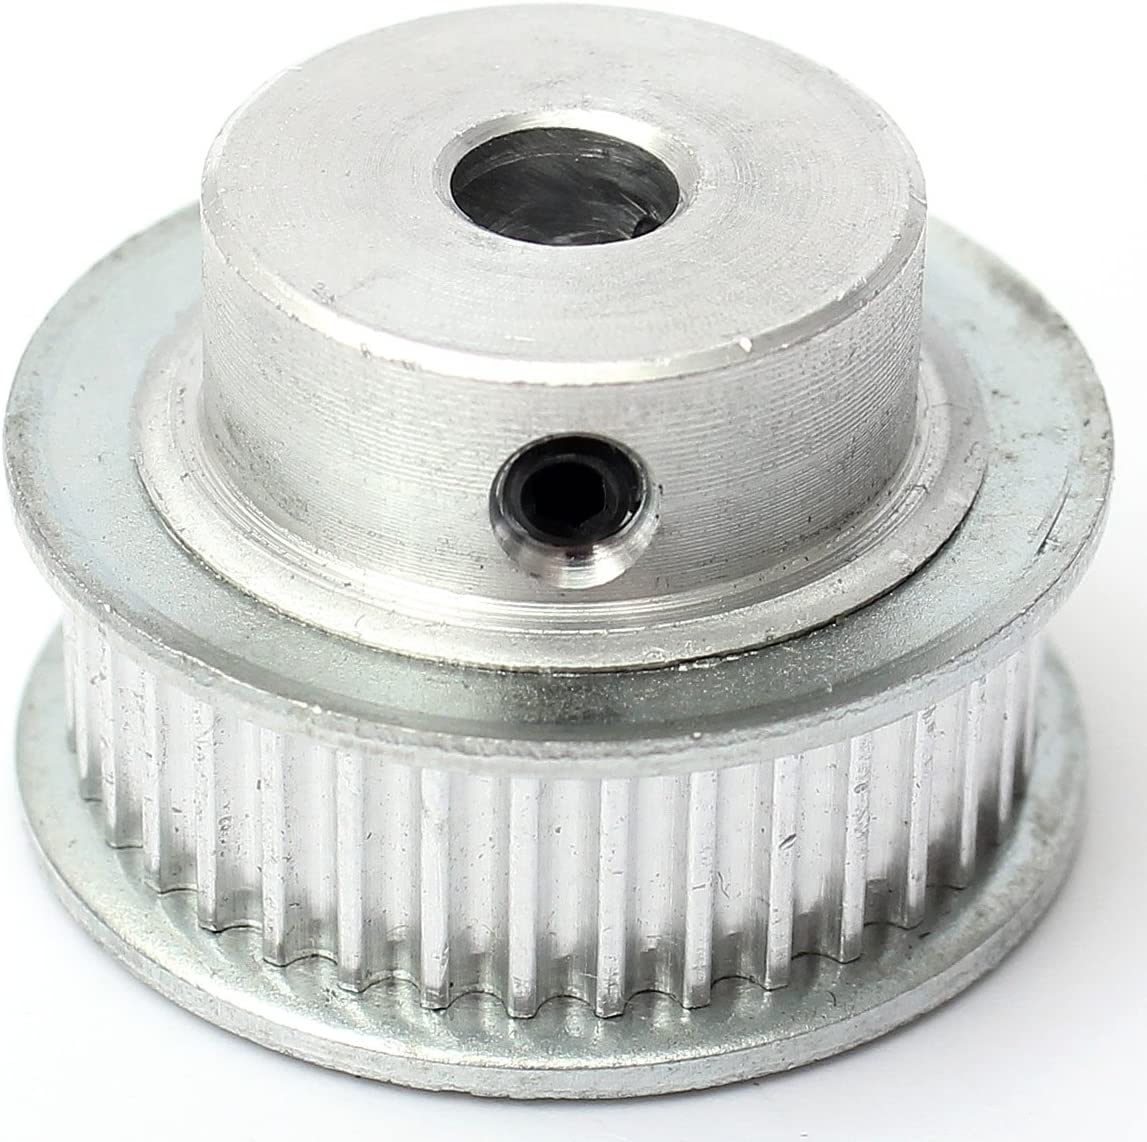 ILS 3 pieces 36T GT2 Aluminum Timing Drive Pulley For DIY 3D Printer